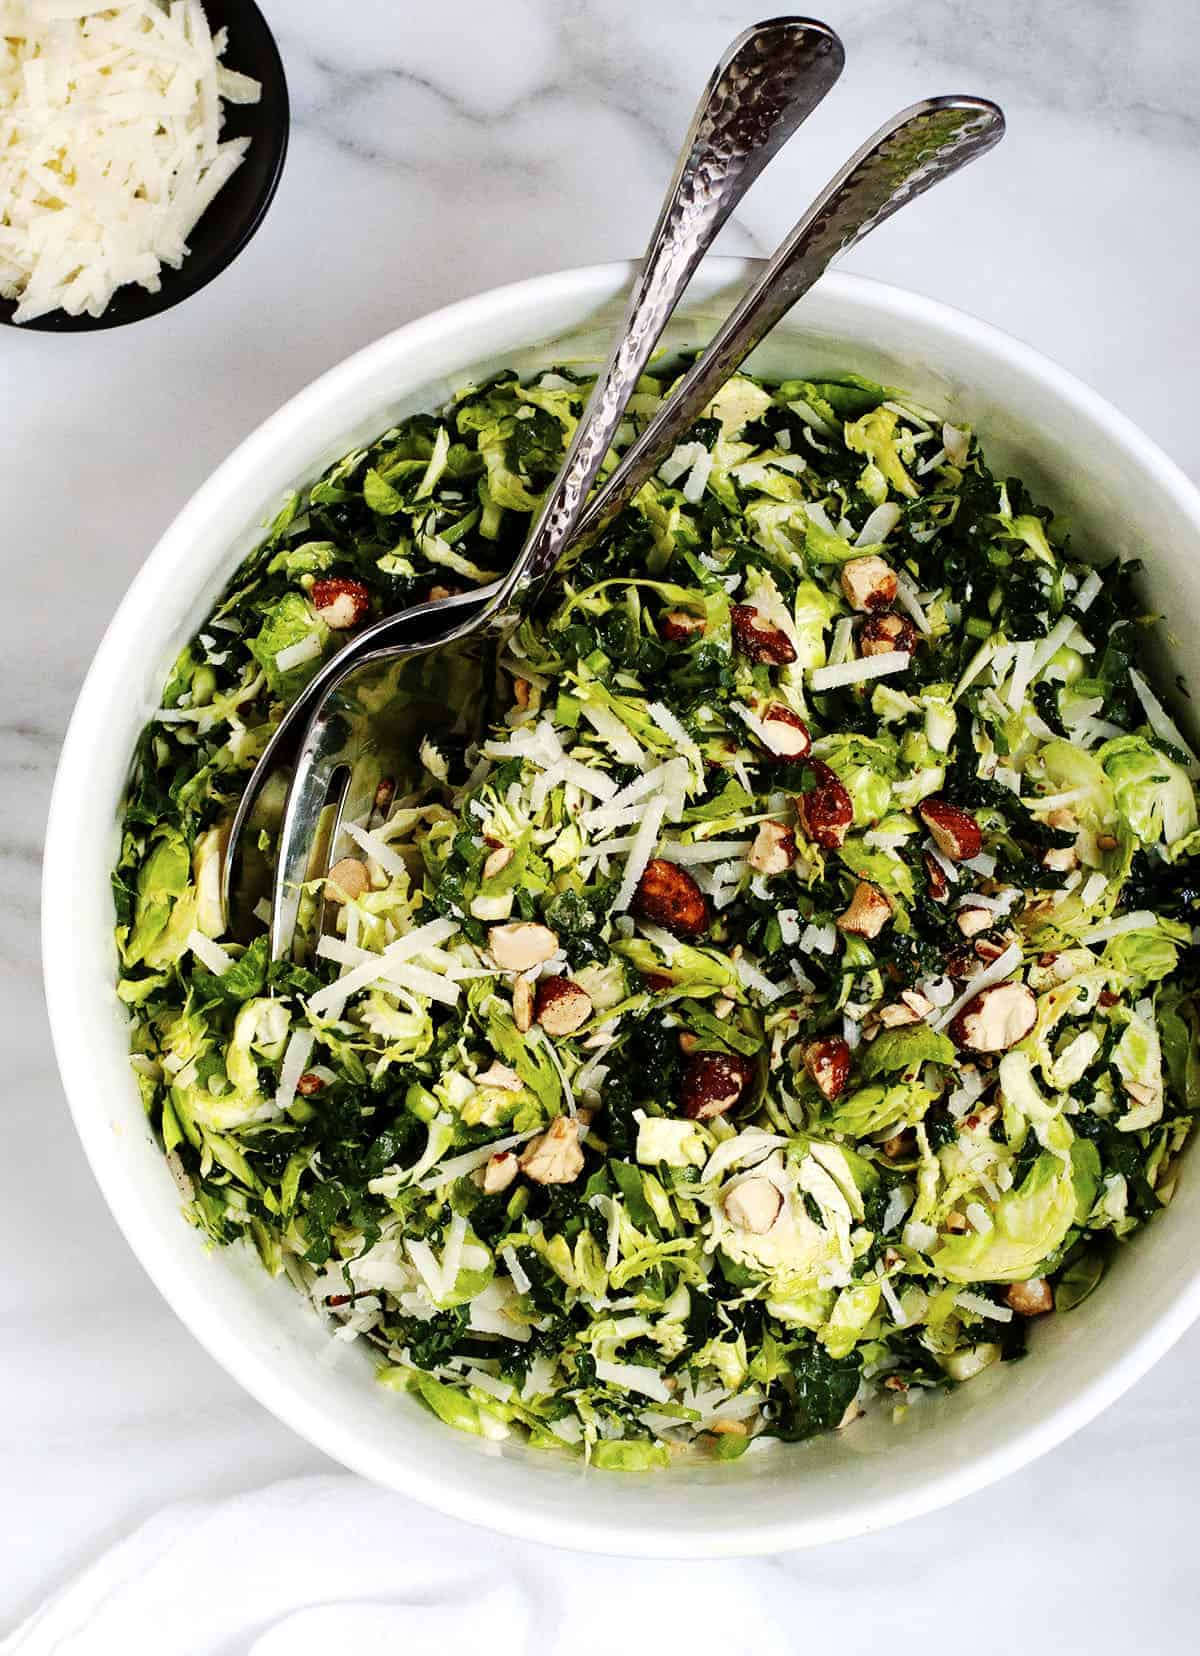 Kale and Brussels Sprout Salad served in a white bowl